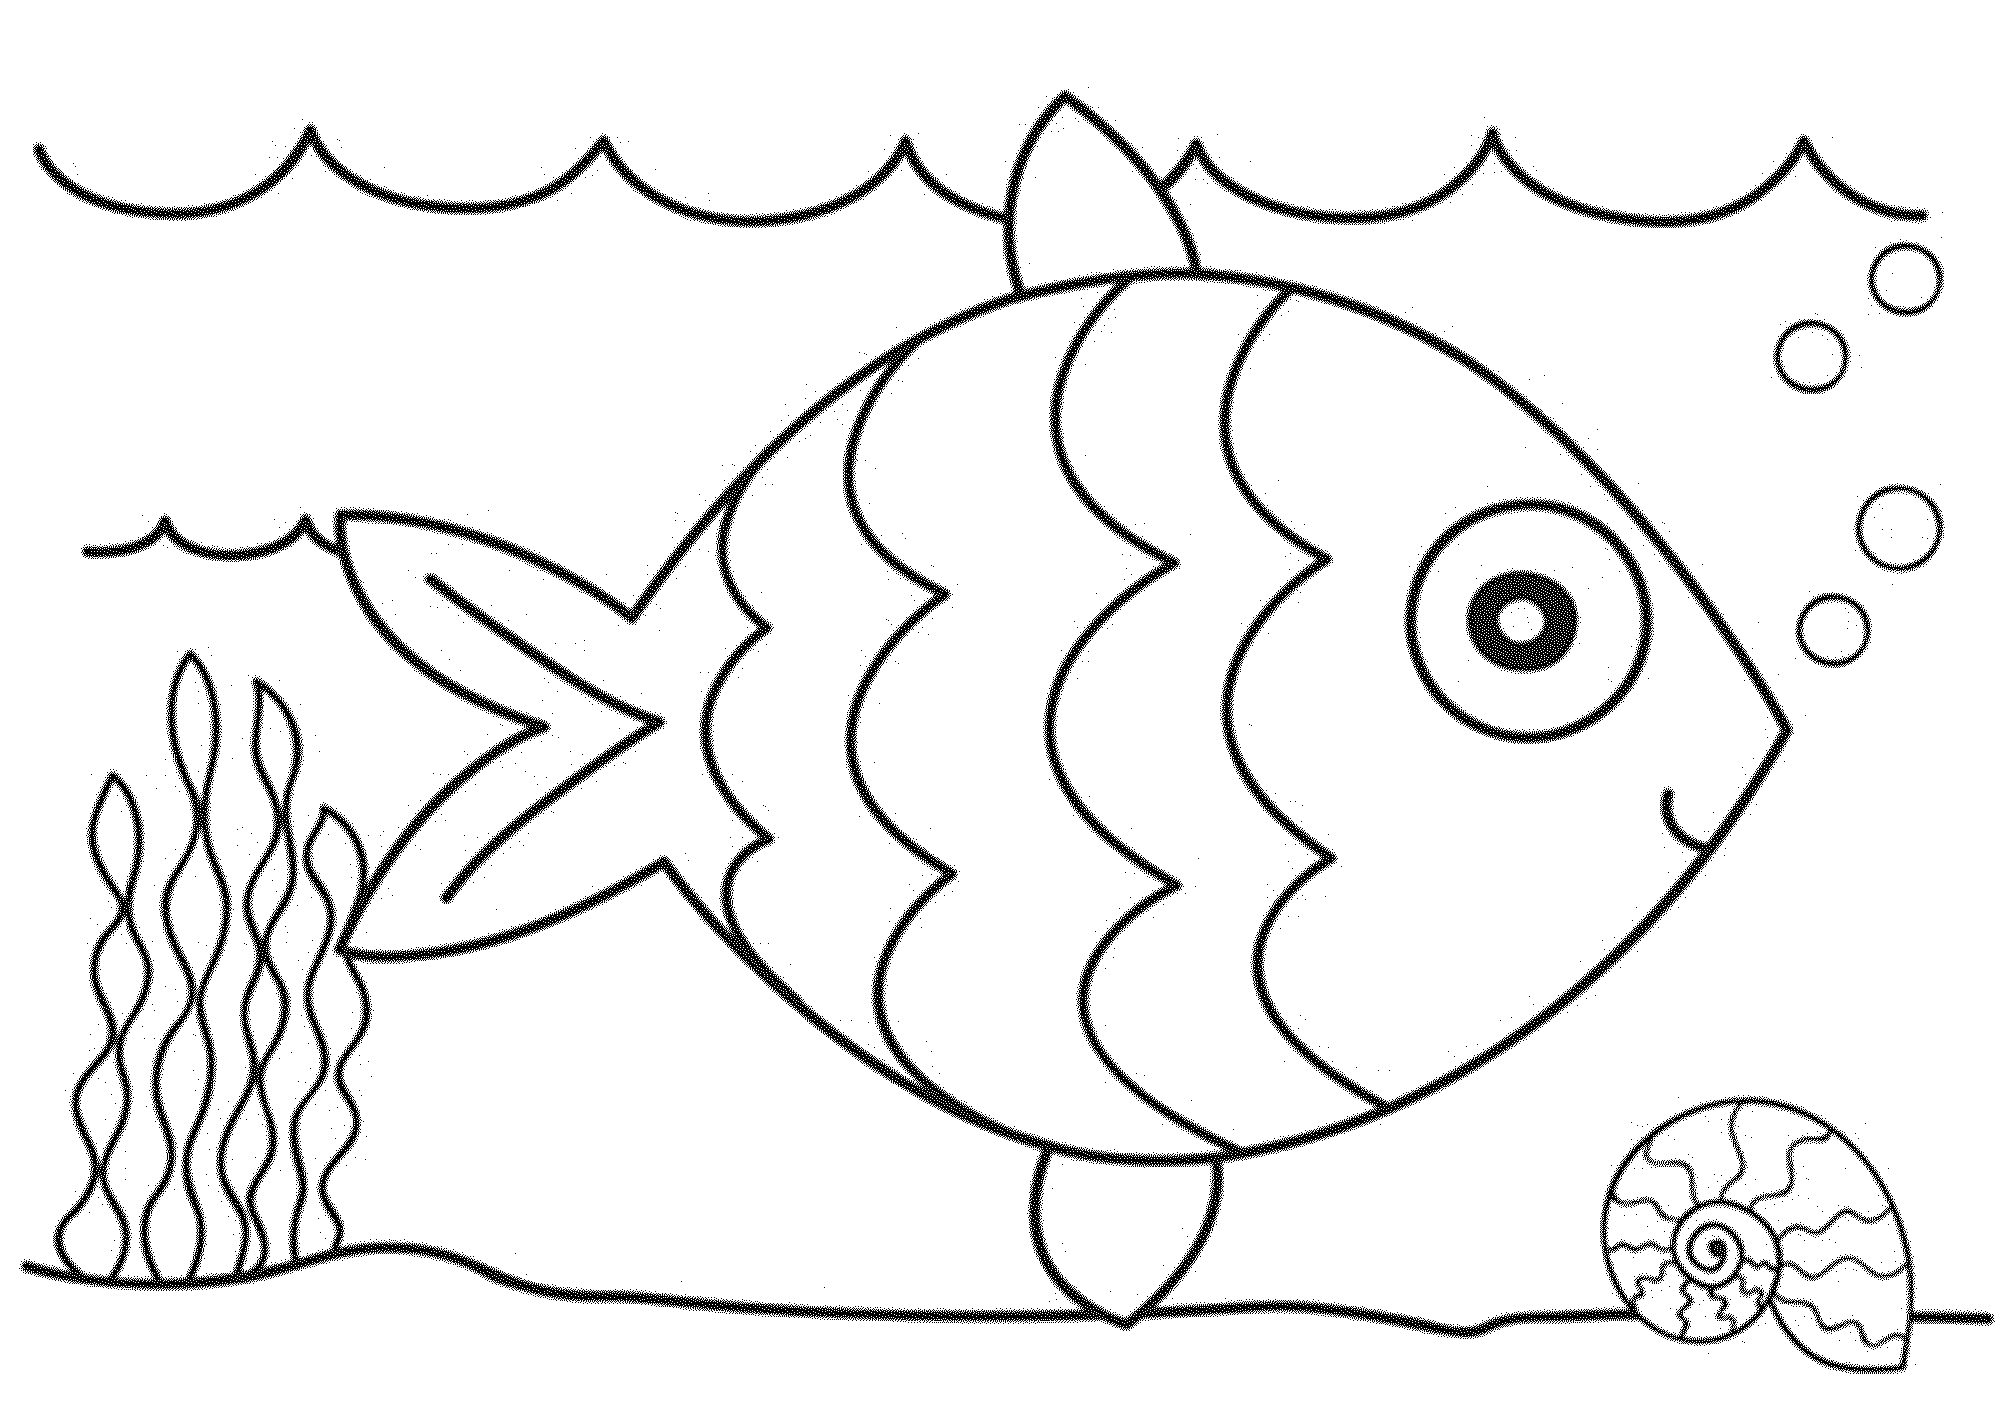 fish to color printable fish coloring pages at getdrawings free download to color fish